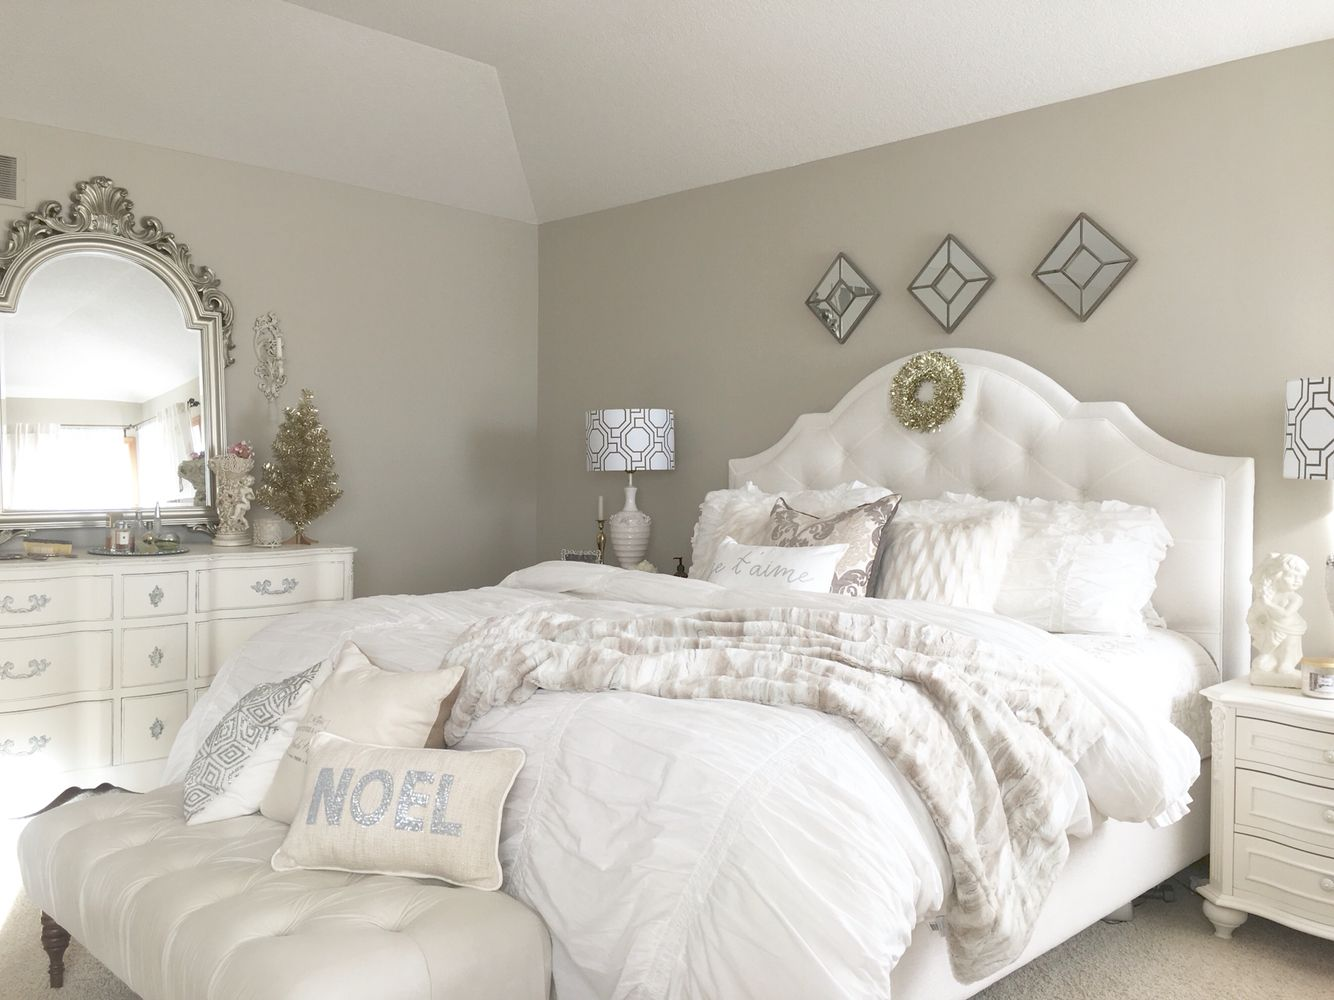 Best Holiday Decor In Masterbedroom French Country Glam 400 x 300